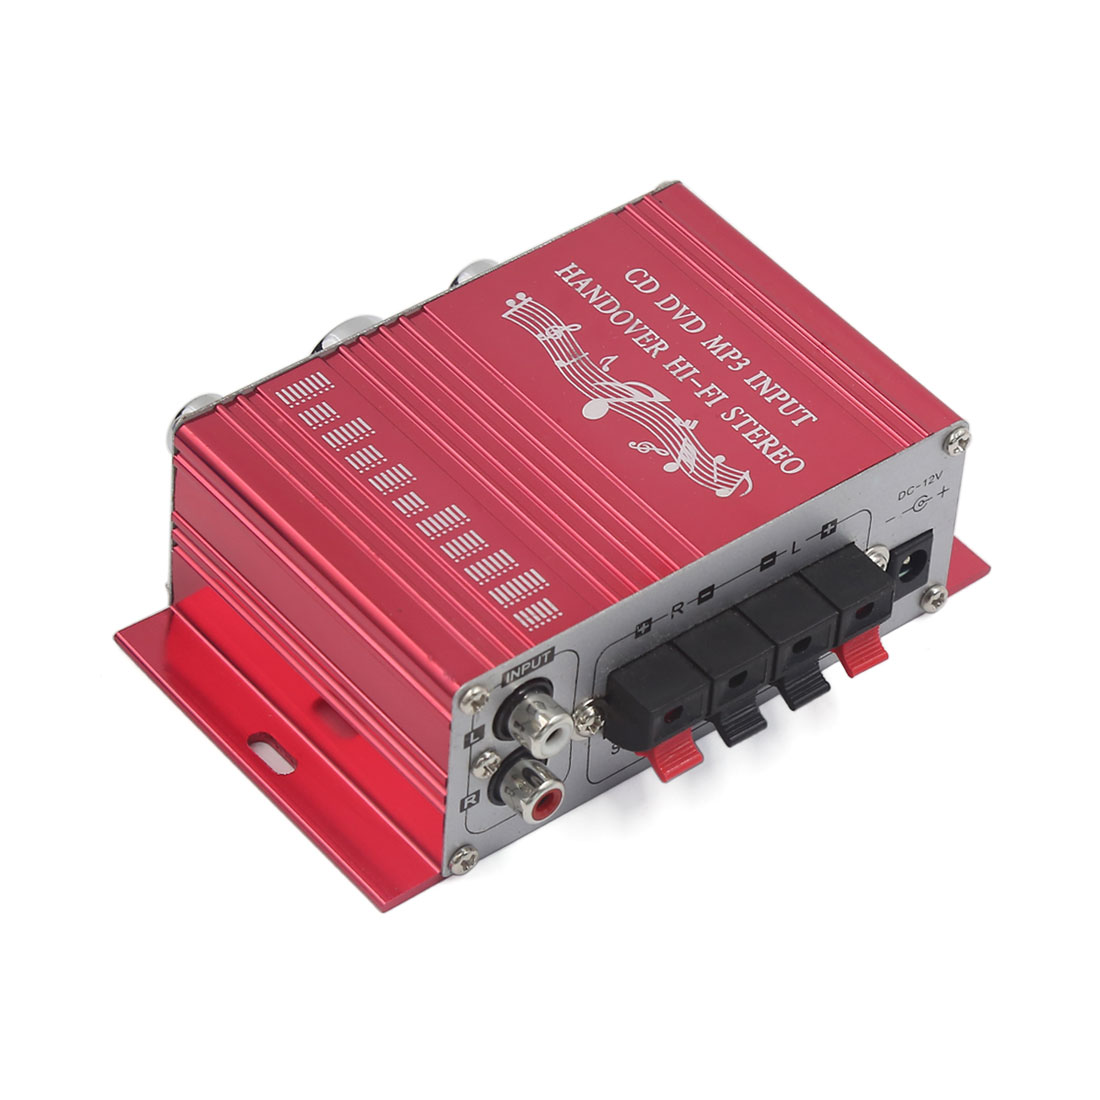 Unique Bargains 2-CH Mini Hi-Fi Car Boat Home Audio Stereo Amplifier CD DVD MP3 Player Red